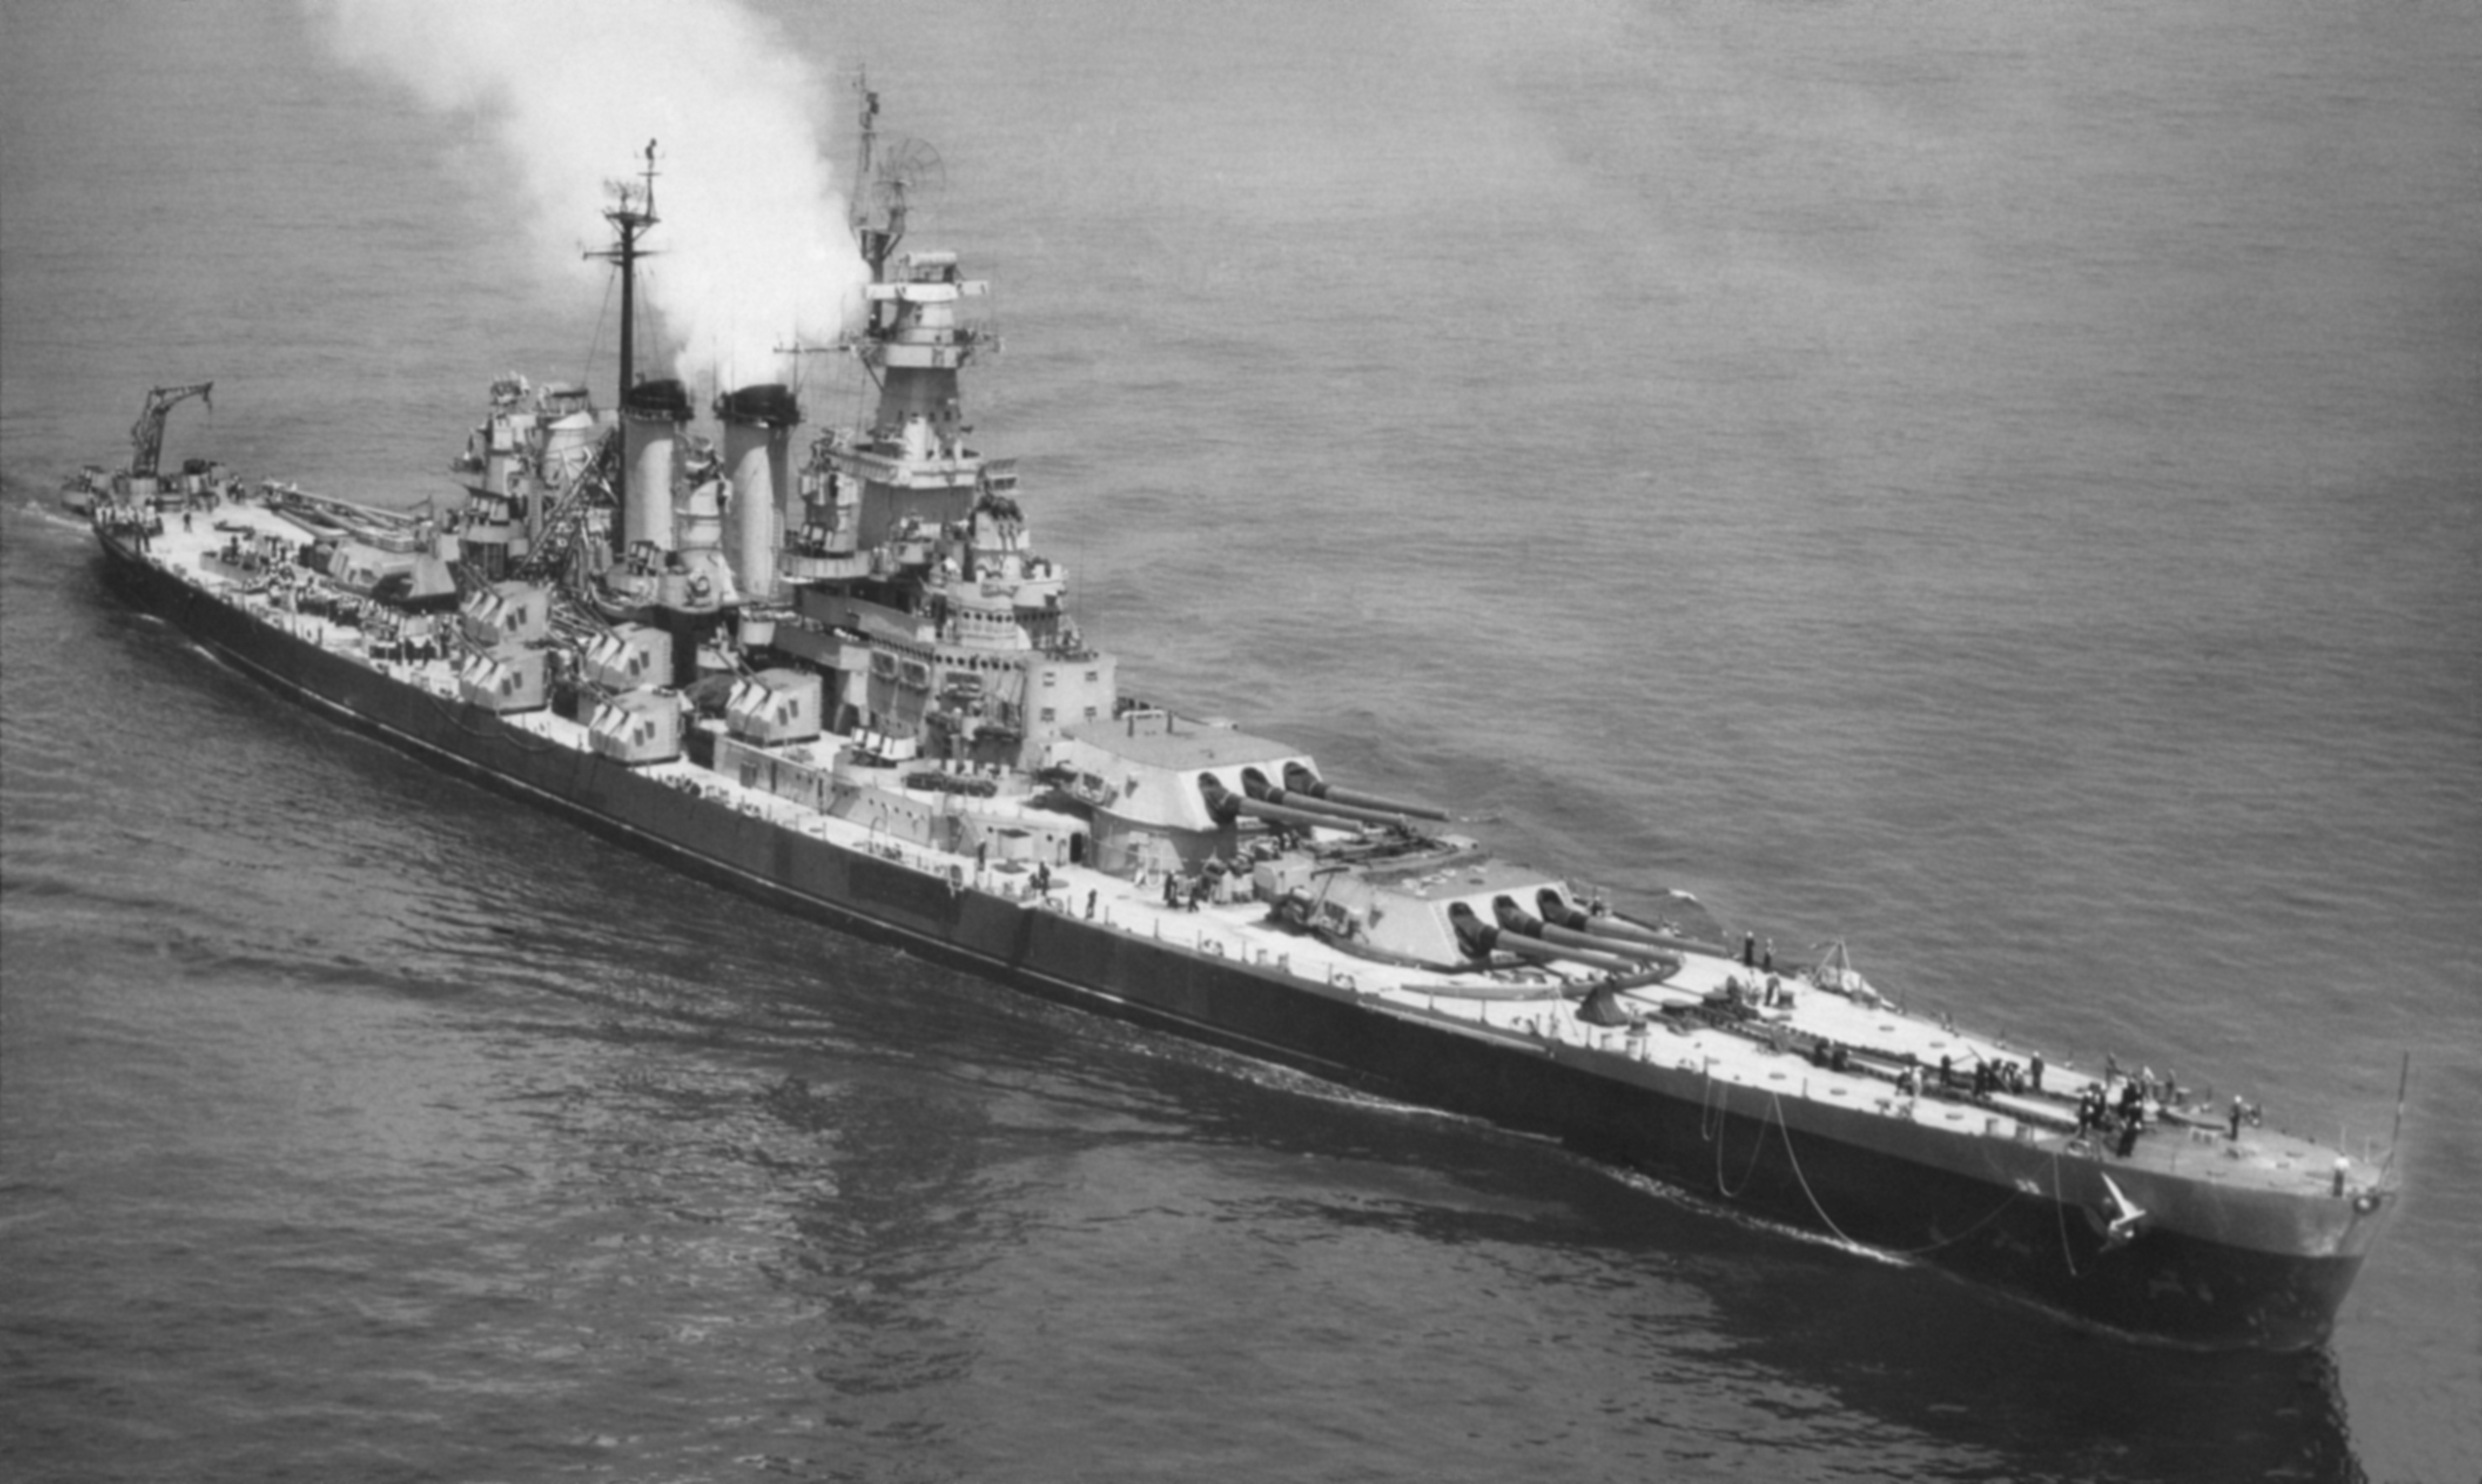 USS North Carolina was completed in 1937 and took part in nearly every naval offensive in the Pacific during World War II.